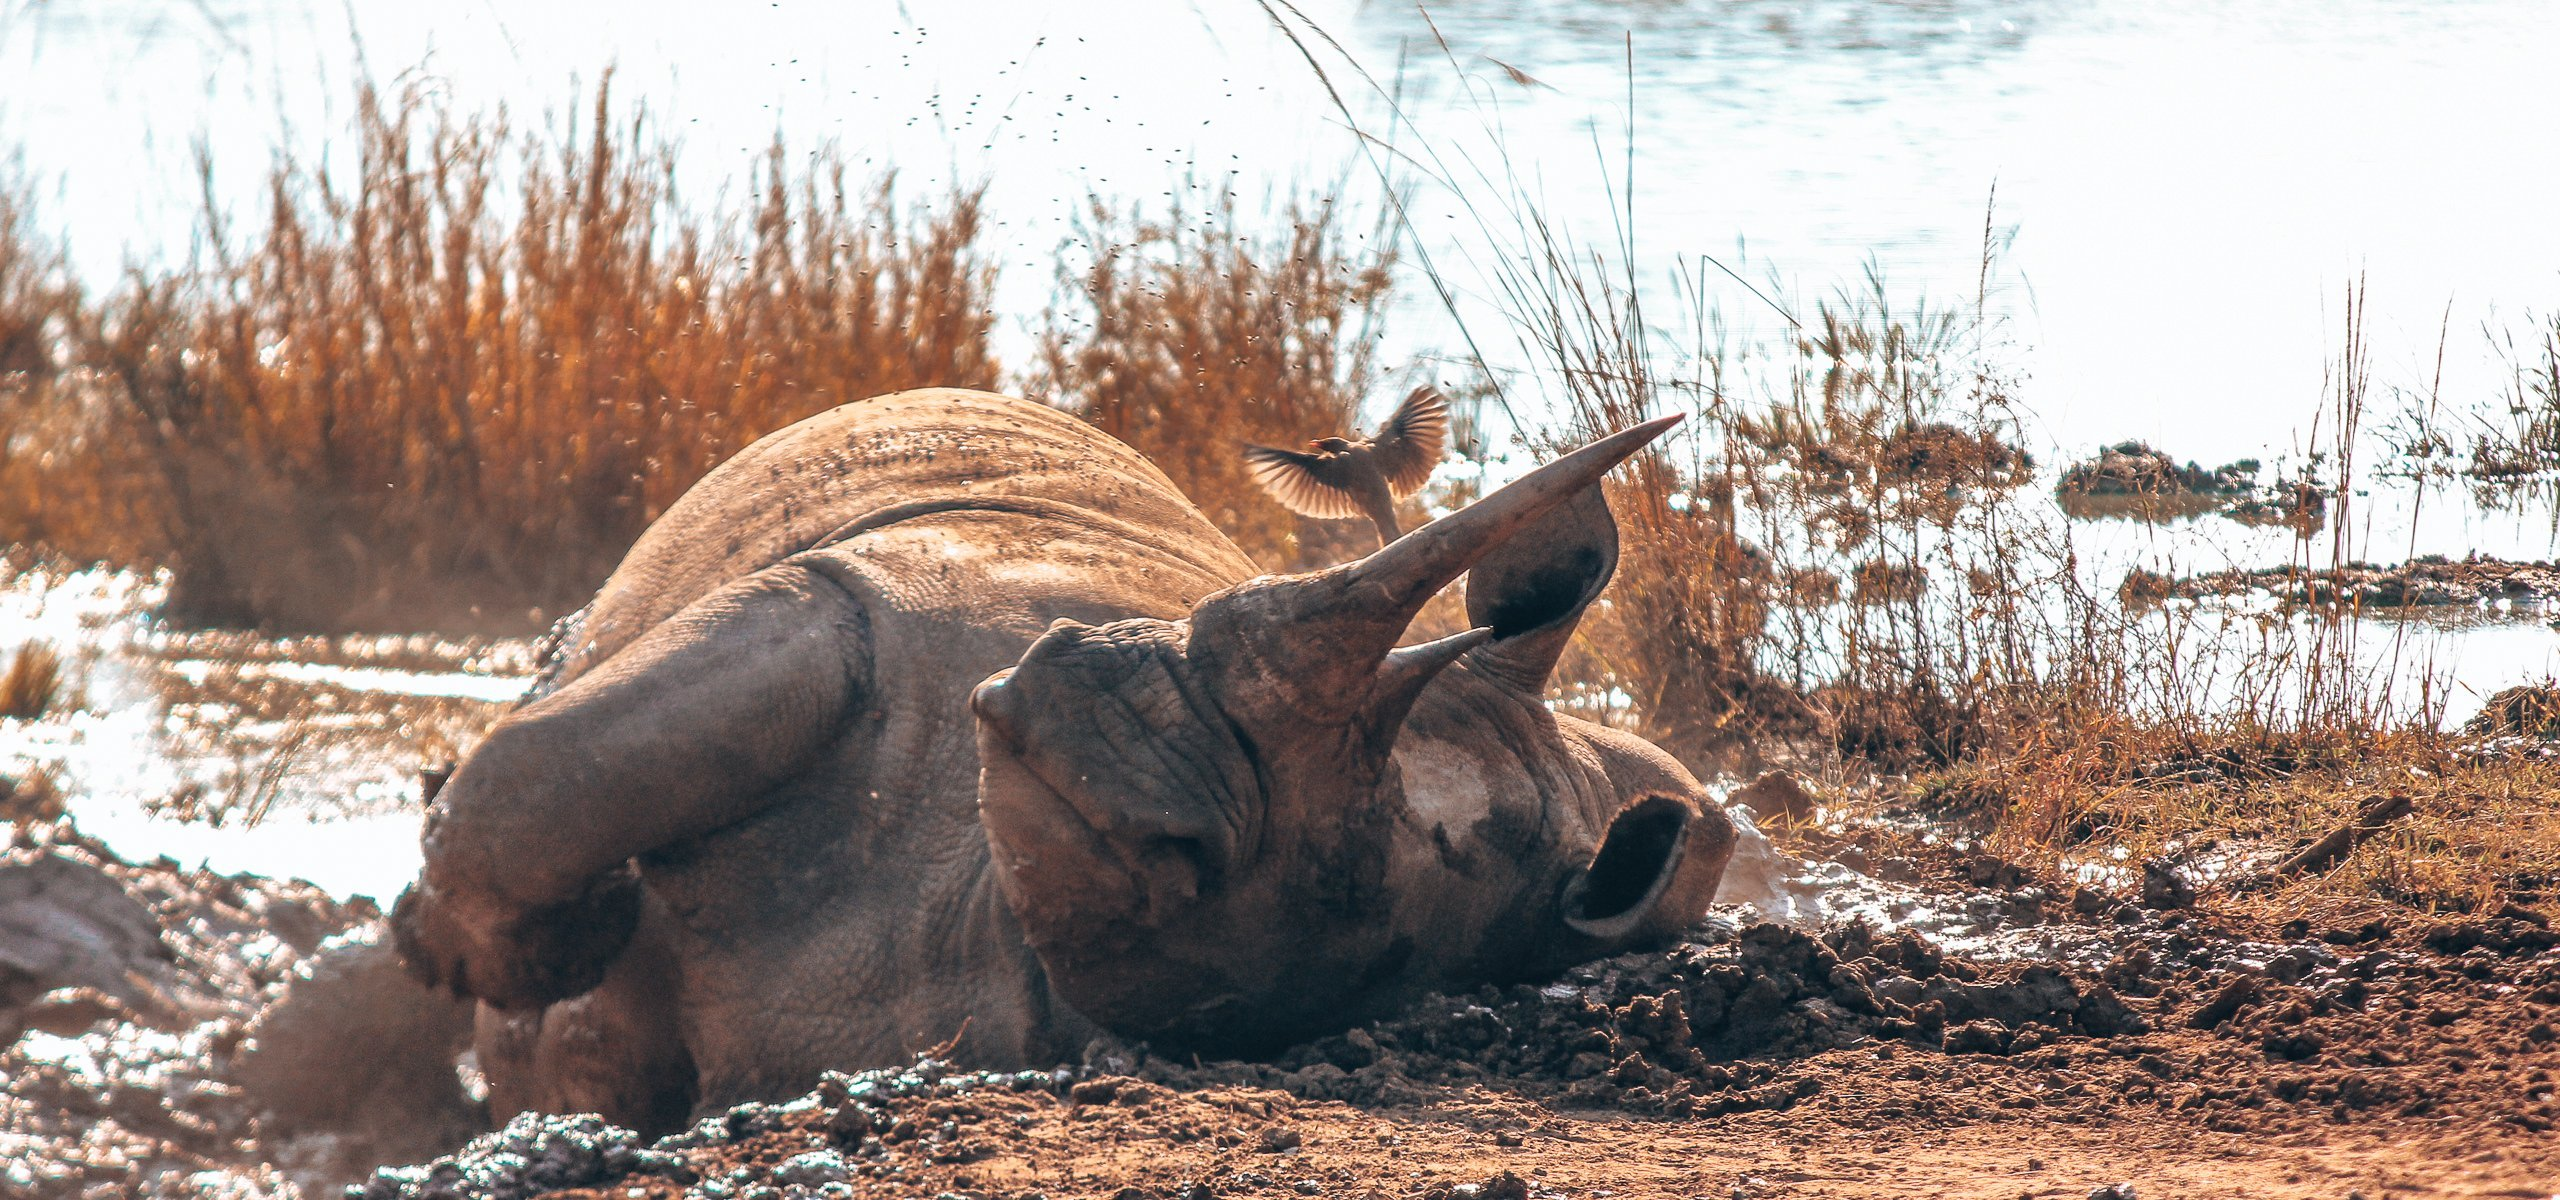 An adult rhino enjoys rolling in the mud at Hlane Royal National Park, Swaziland